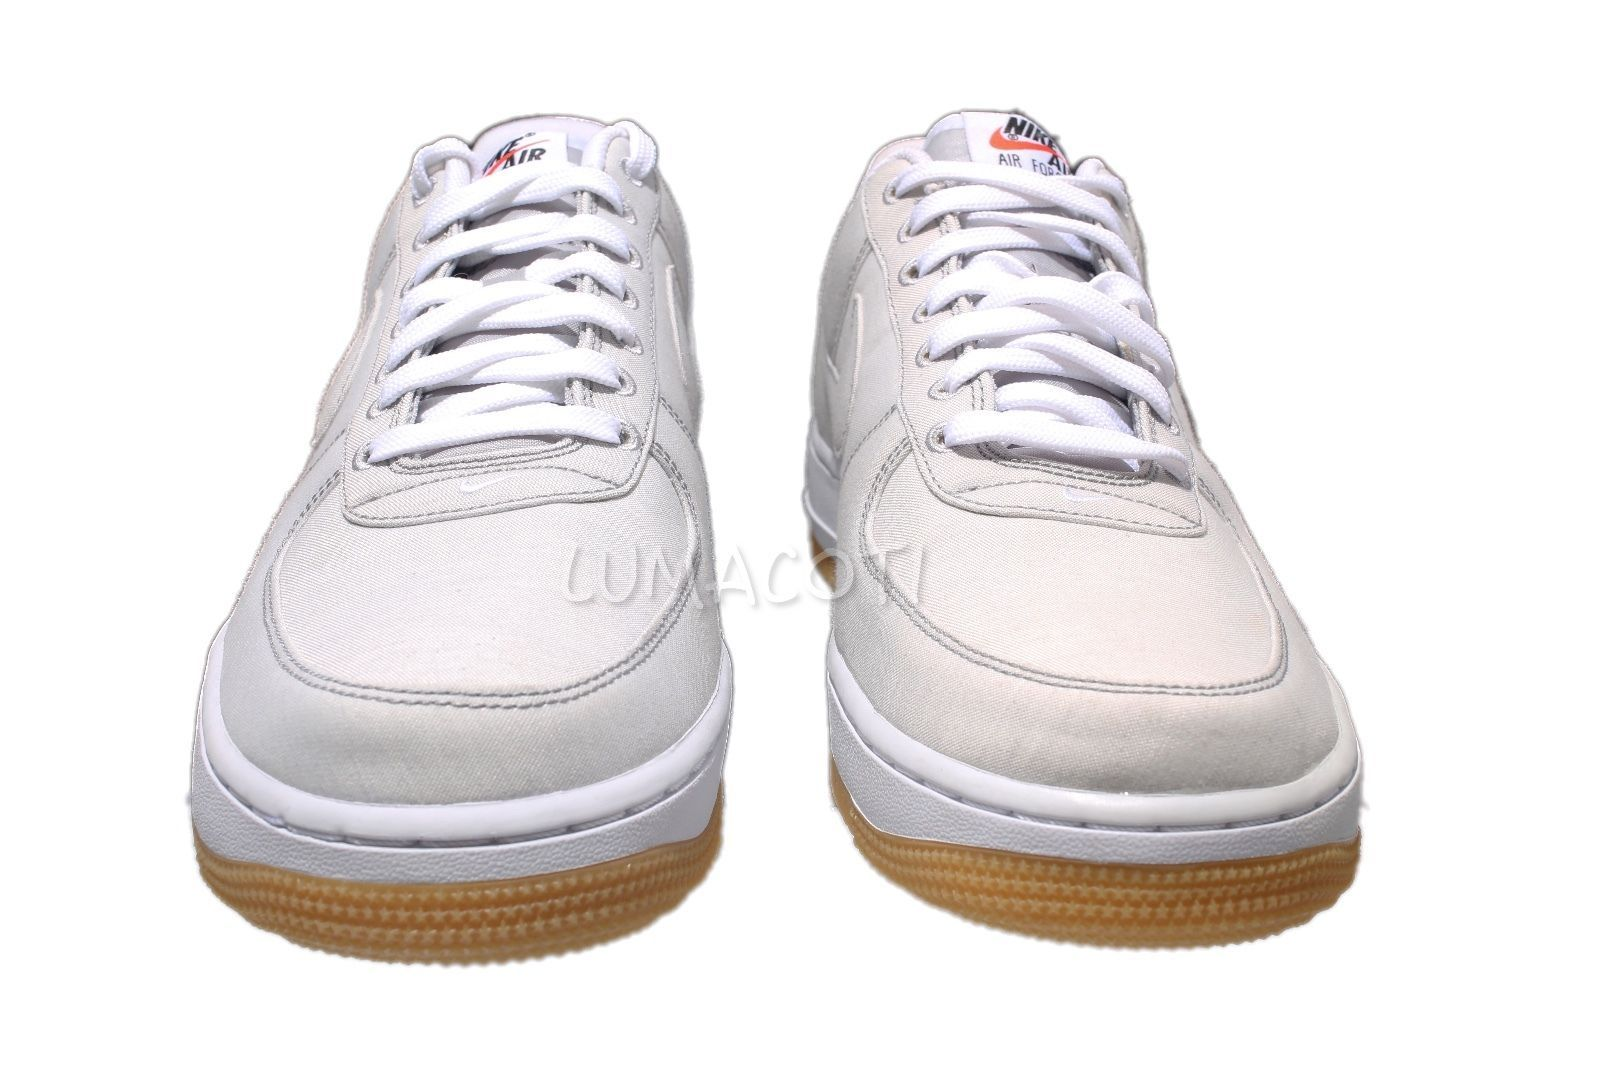 cbbc4b2dd29 Mens Size 9.5 Nike Air Force 1 LV8 Wolf Grey Gum Low Sneakers  718152